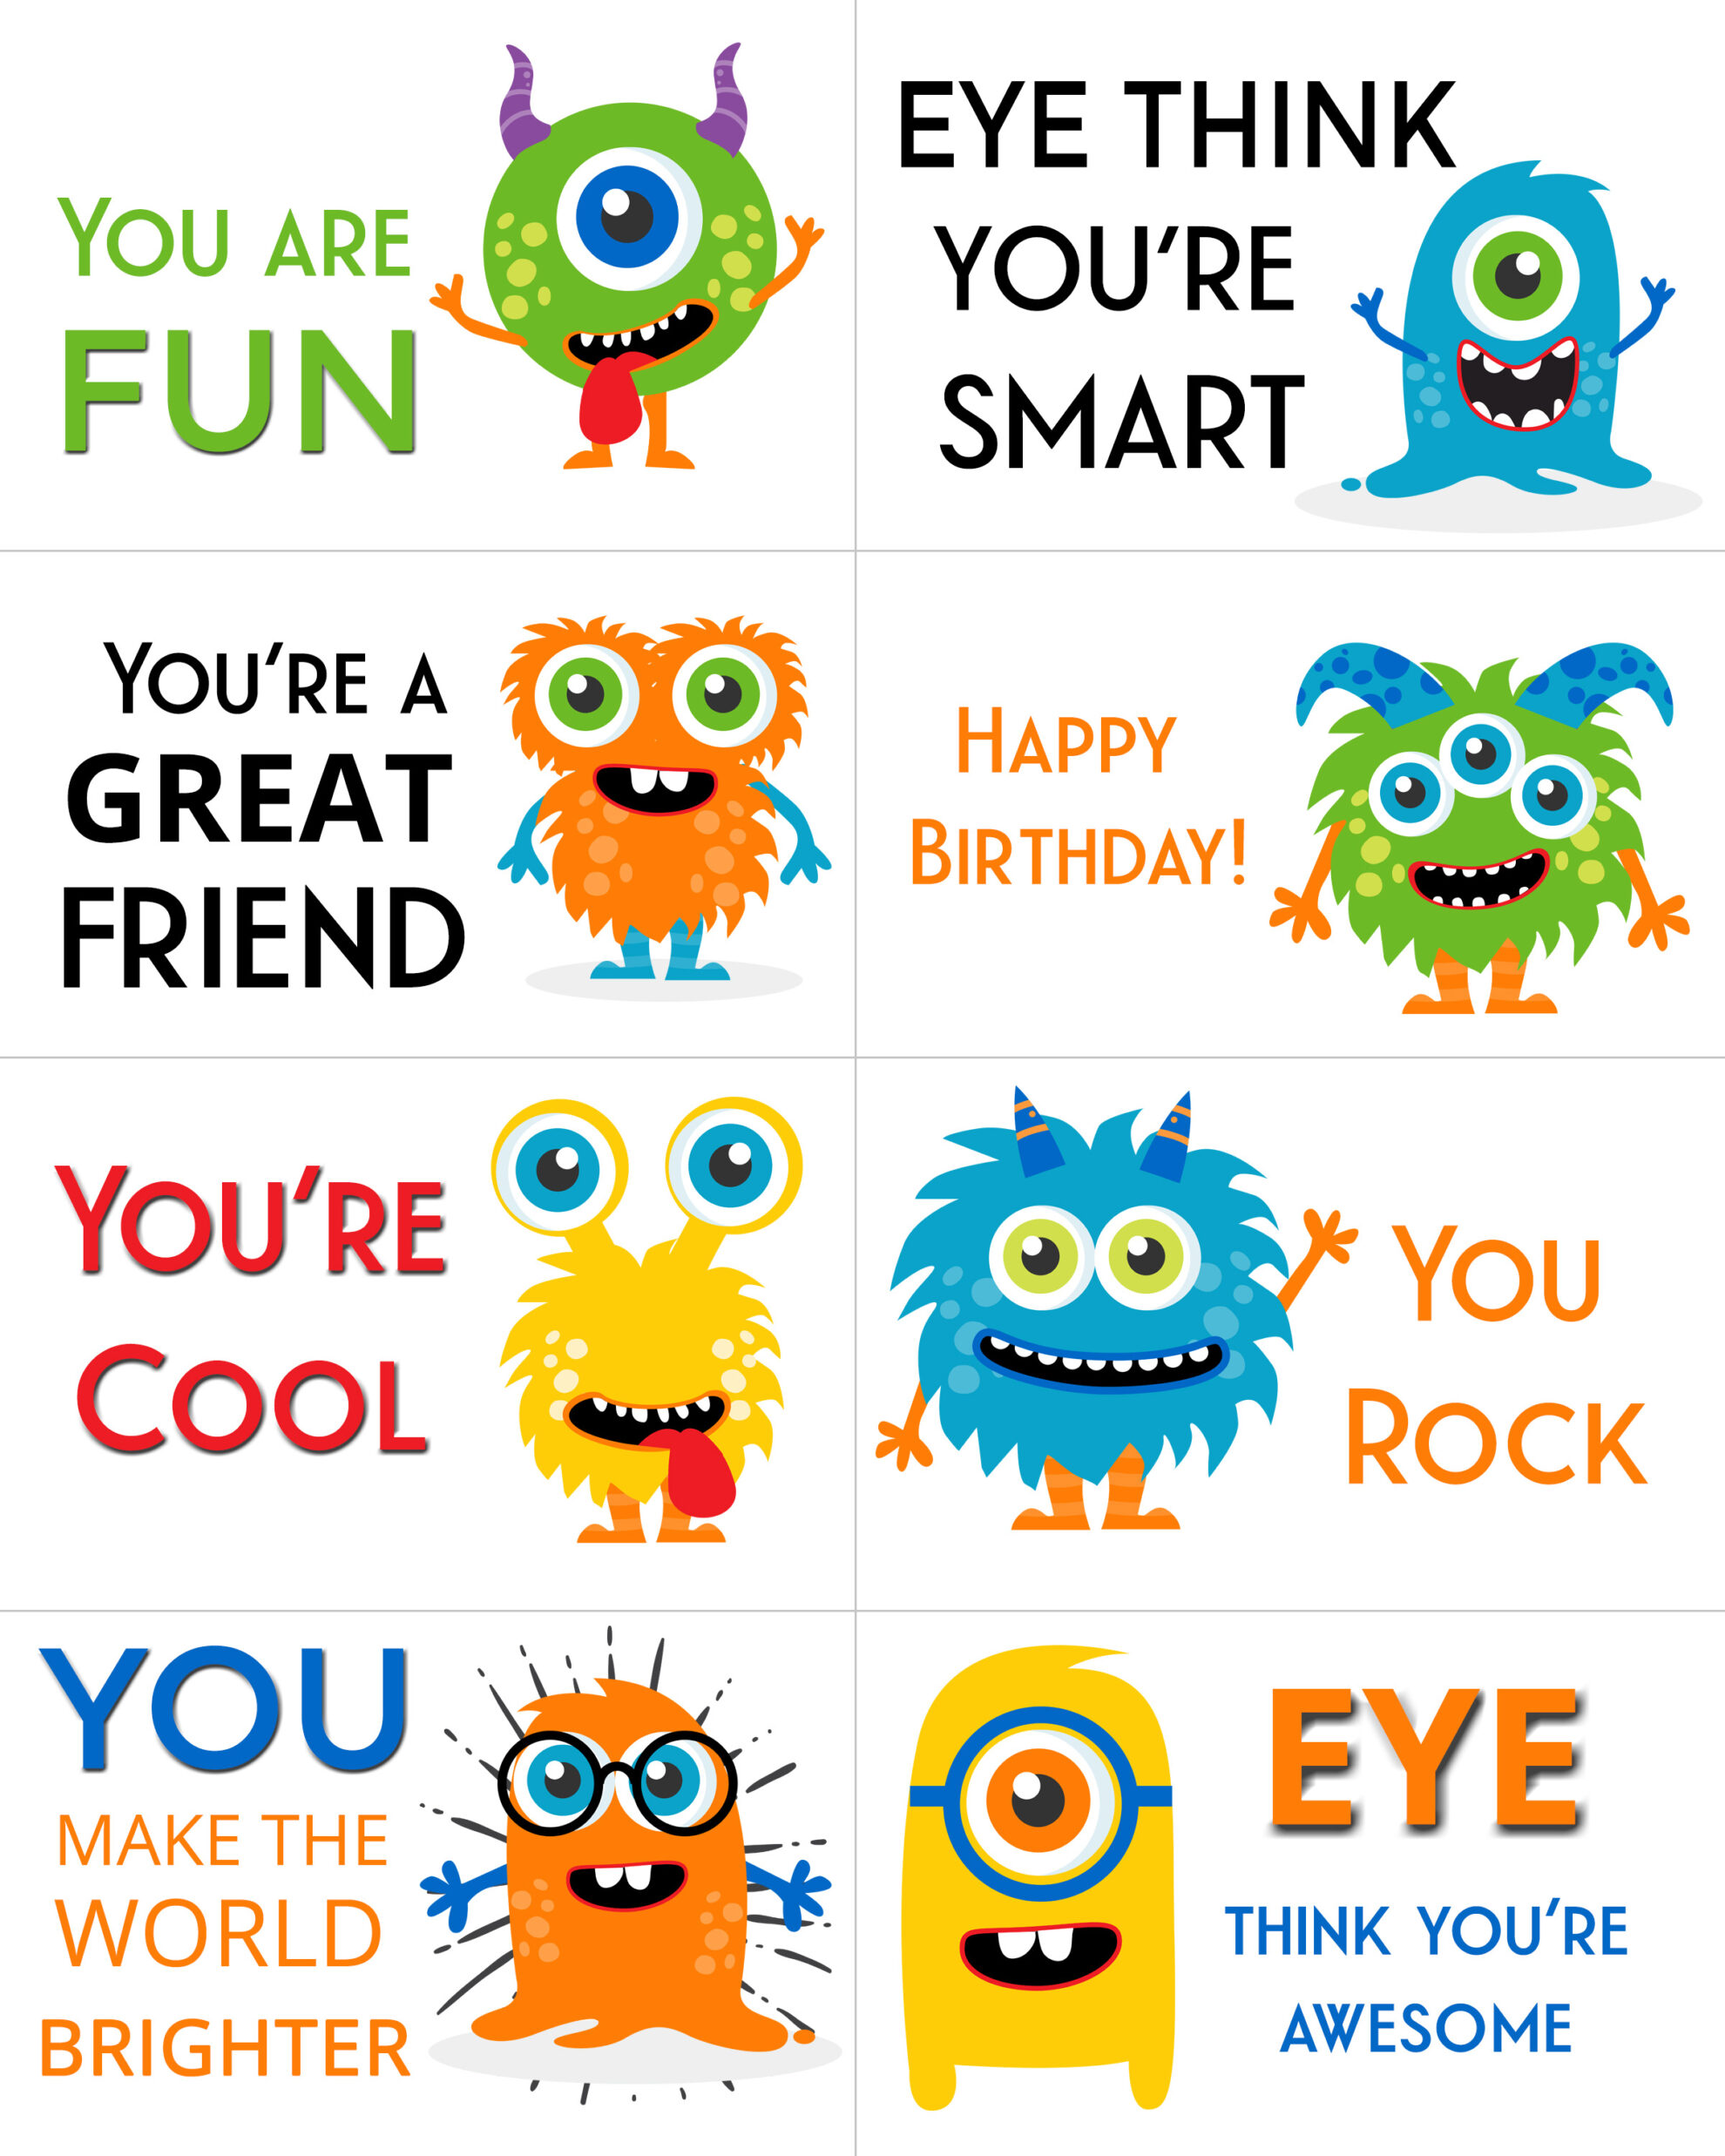 Show you care with these free printable adorable monster lunch box message notes perfect for your little ones school lunches!